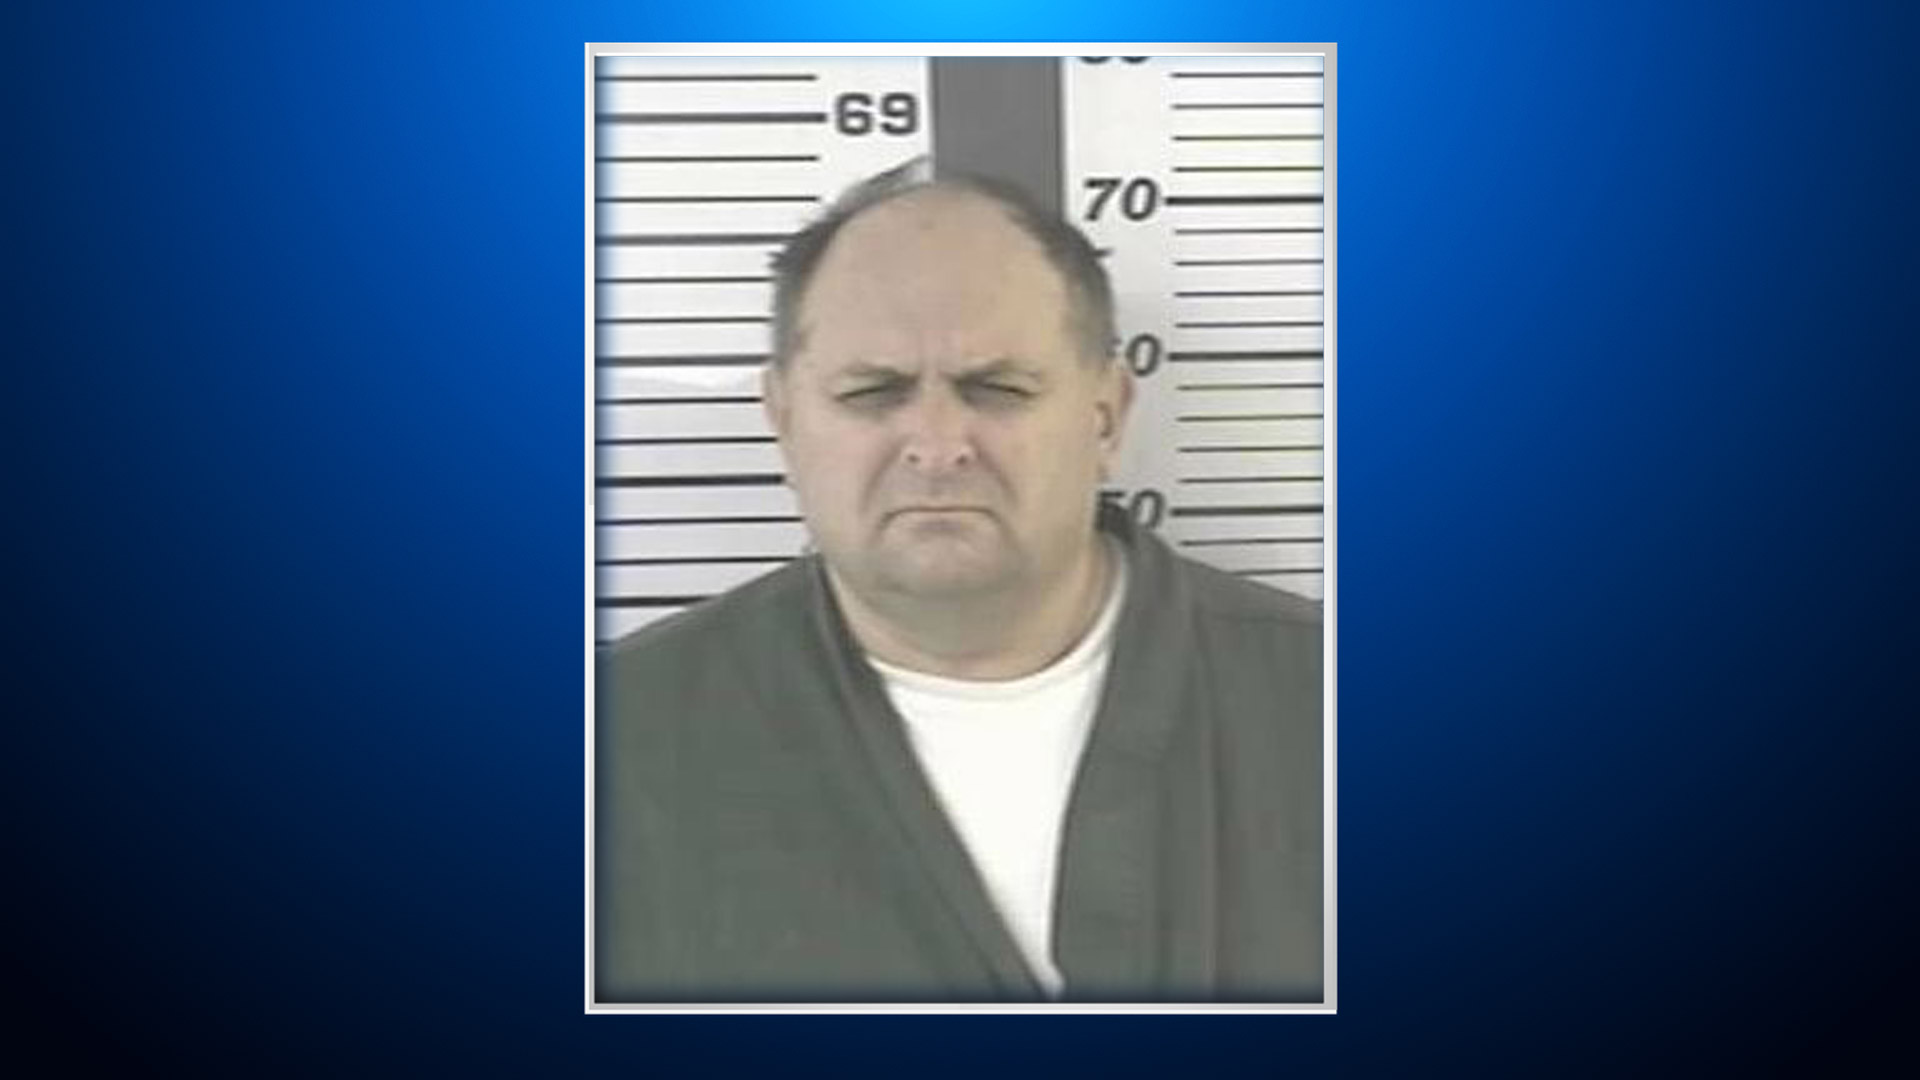 Bruce Rickey (credit: Dept. of Corrections)